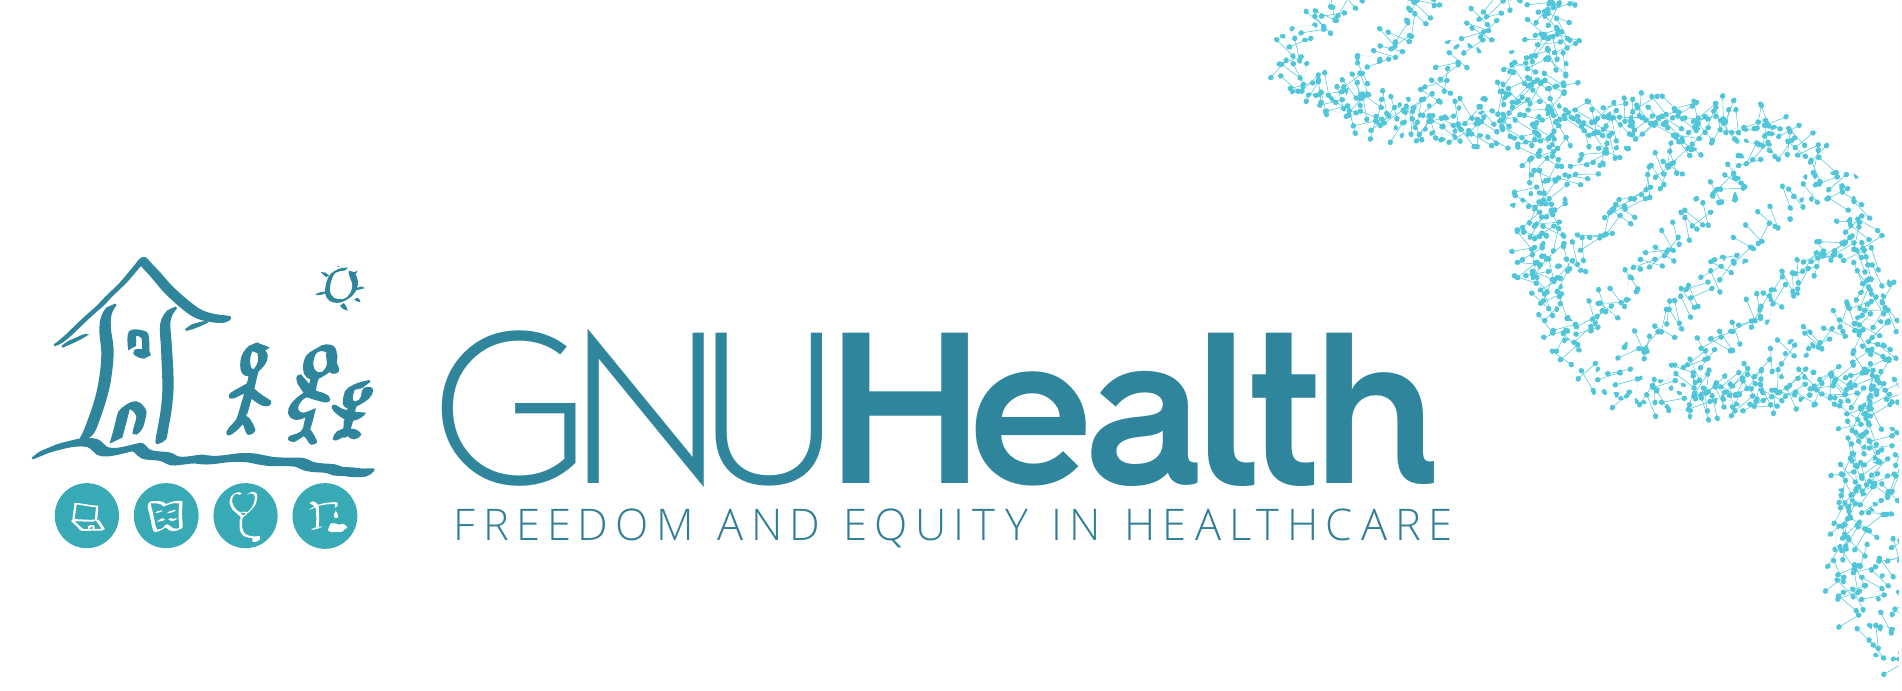 gnuhealth_new_banner_dna_adn